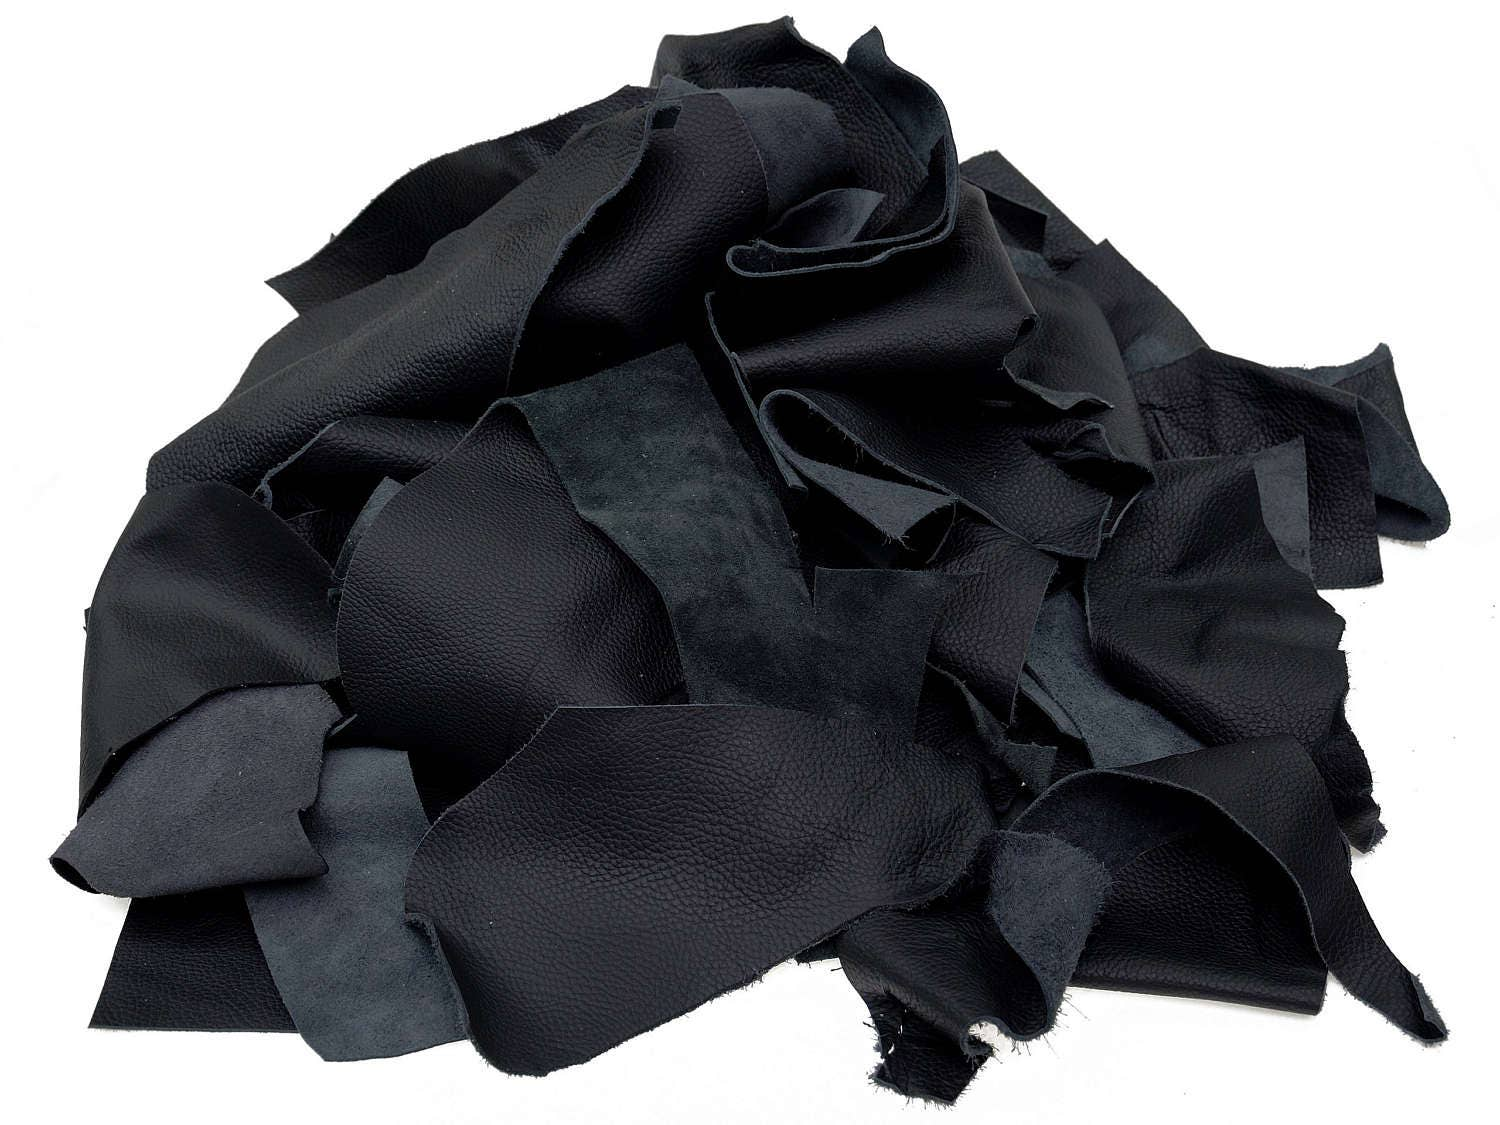 Leather scraps for crafts - Sold By Fabricskingdom